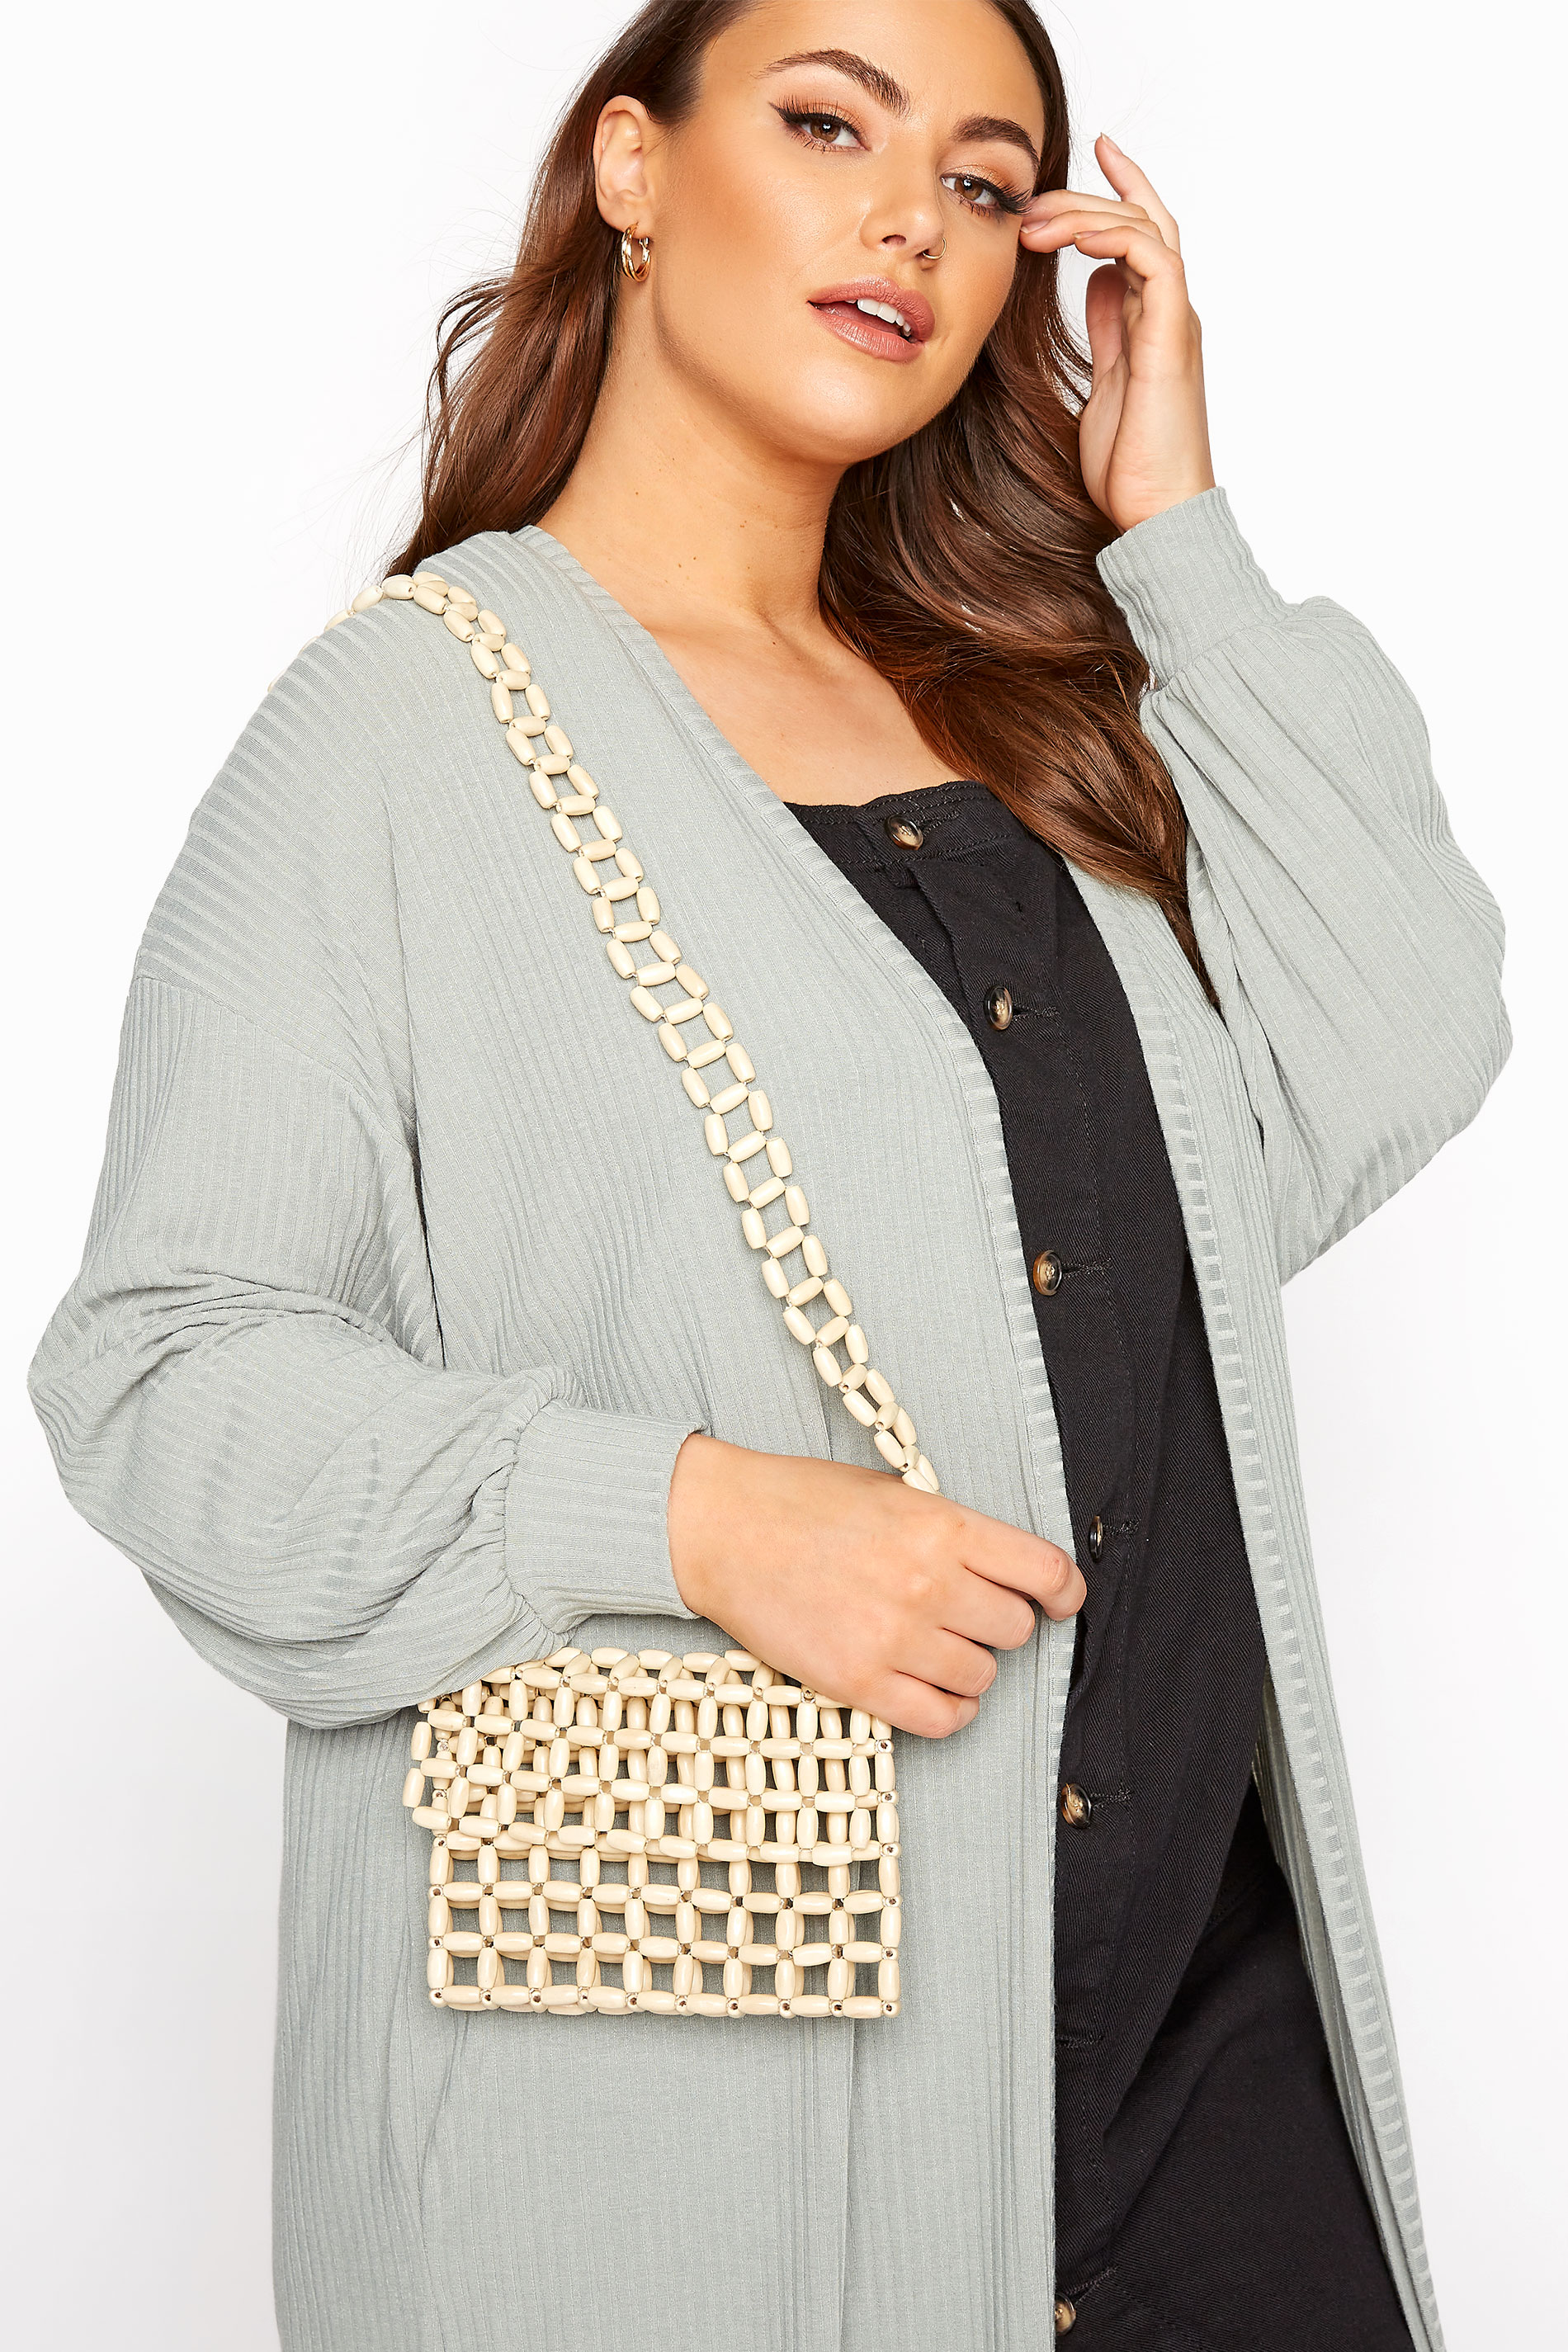 Yours Natural Beaded Crossbody Bag